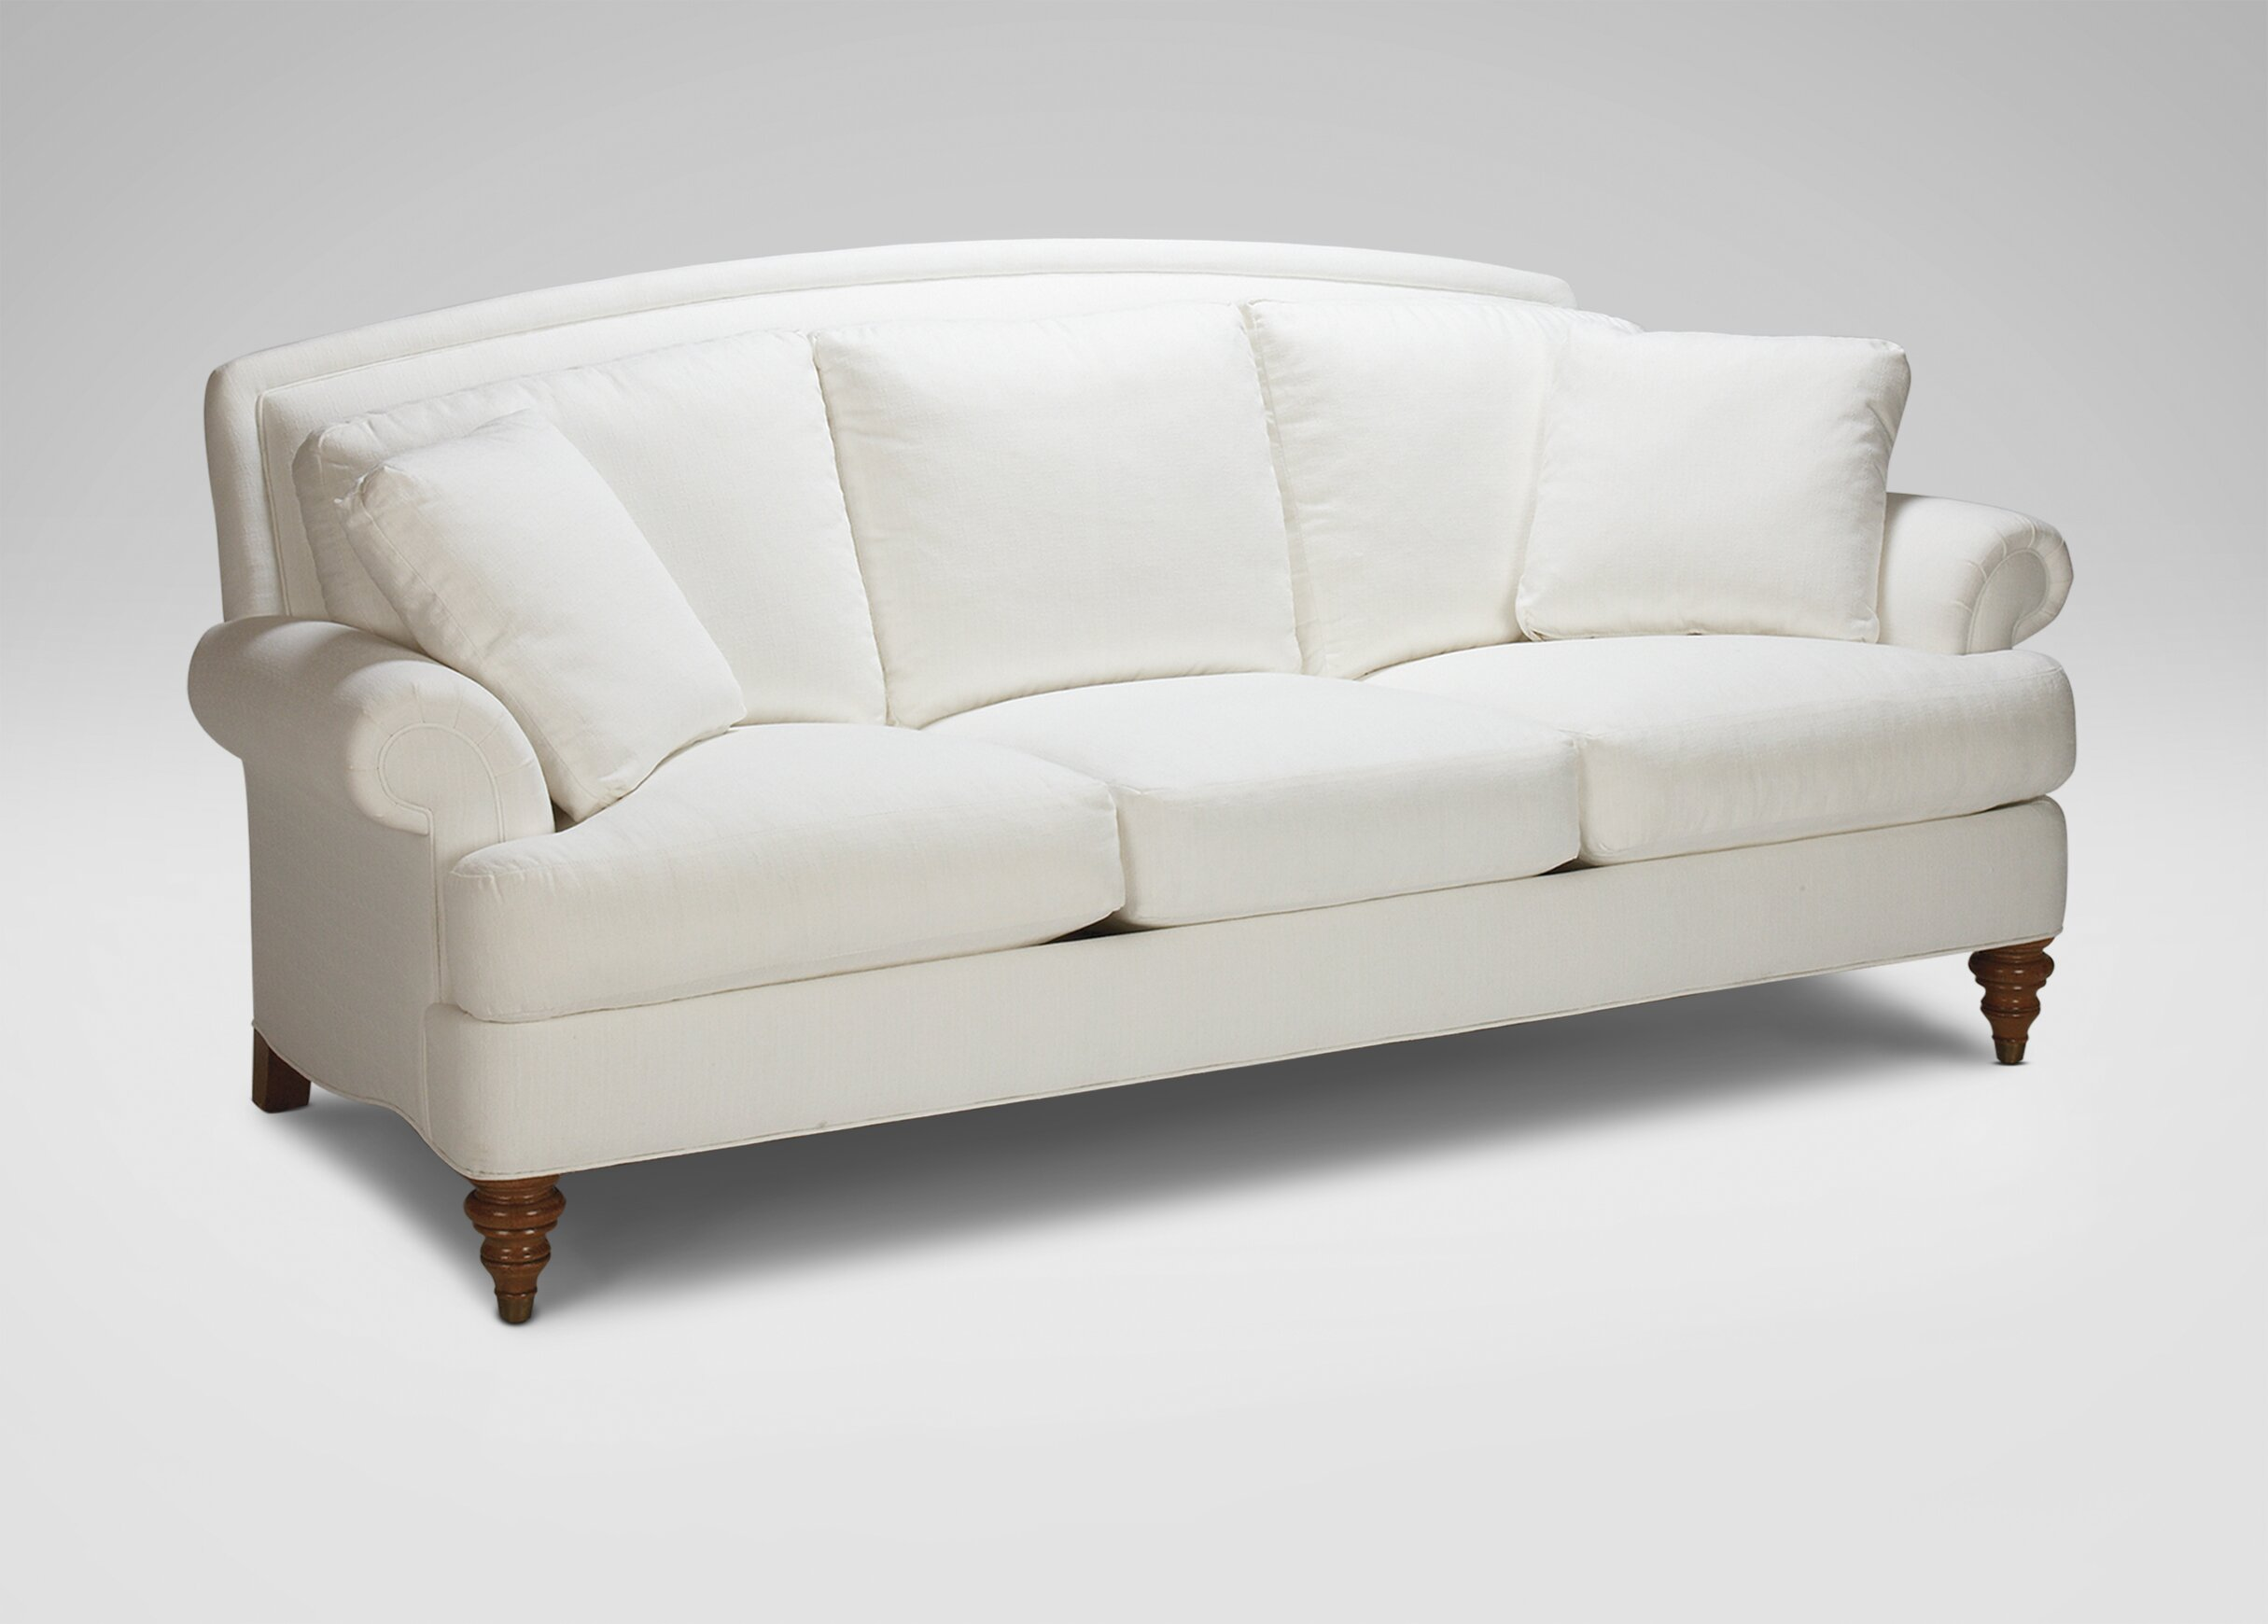 Ethan Allen Leather Couch | Ethan Allen Retreat Sofa Reviews | Quality of Ethan Allen Furniture & Sofas: Ethan Allen Leather Recliners | Ethan Allen Leather Couch ... islam-shia.org